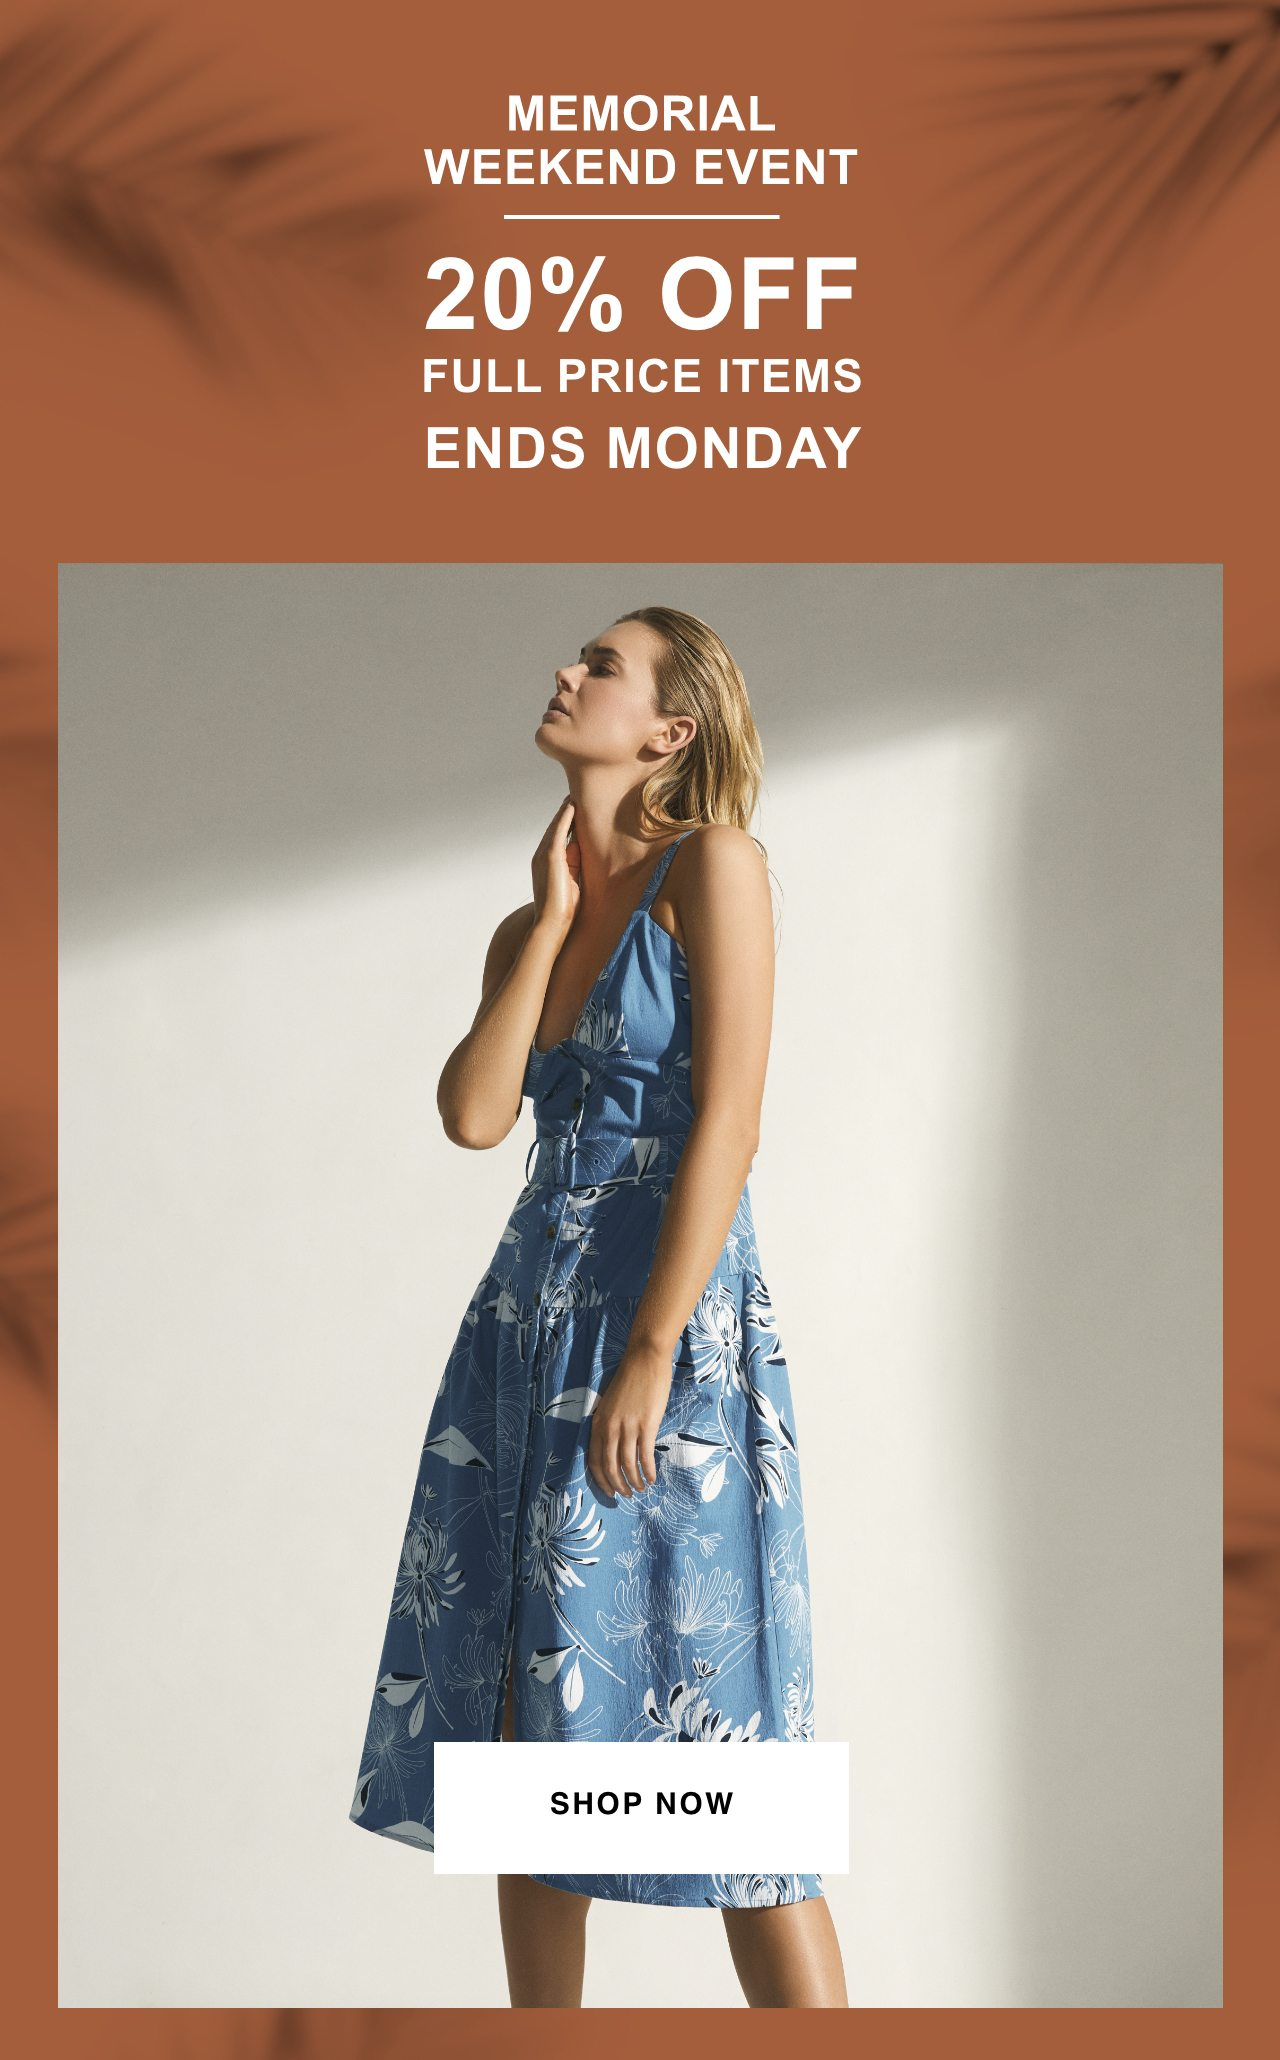 Memorial Weekend Event - 20% Off Full Price Items - Ends Monday